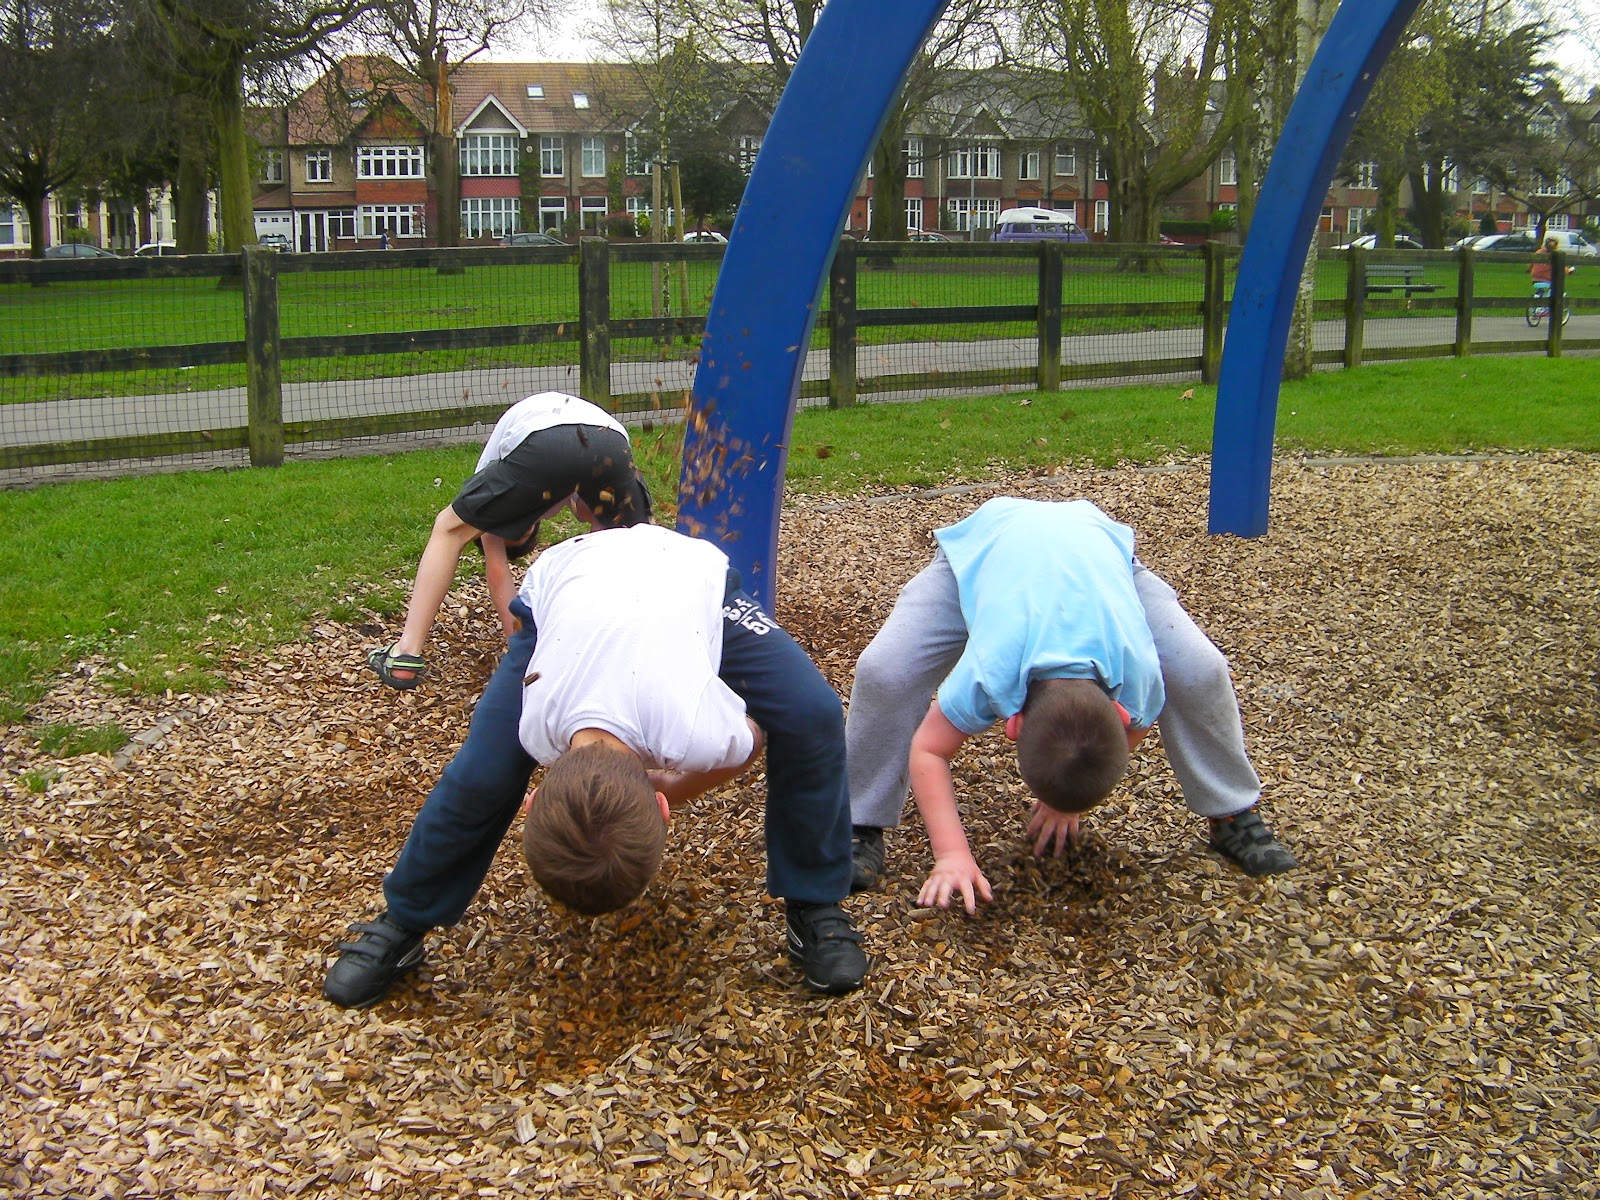 boys piling up woodchips in milton park play area